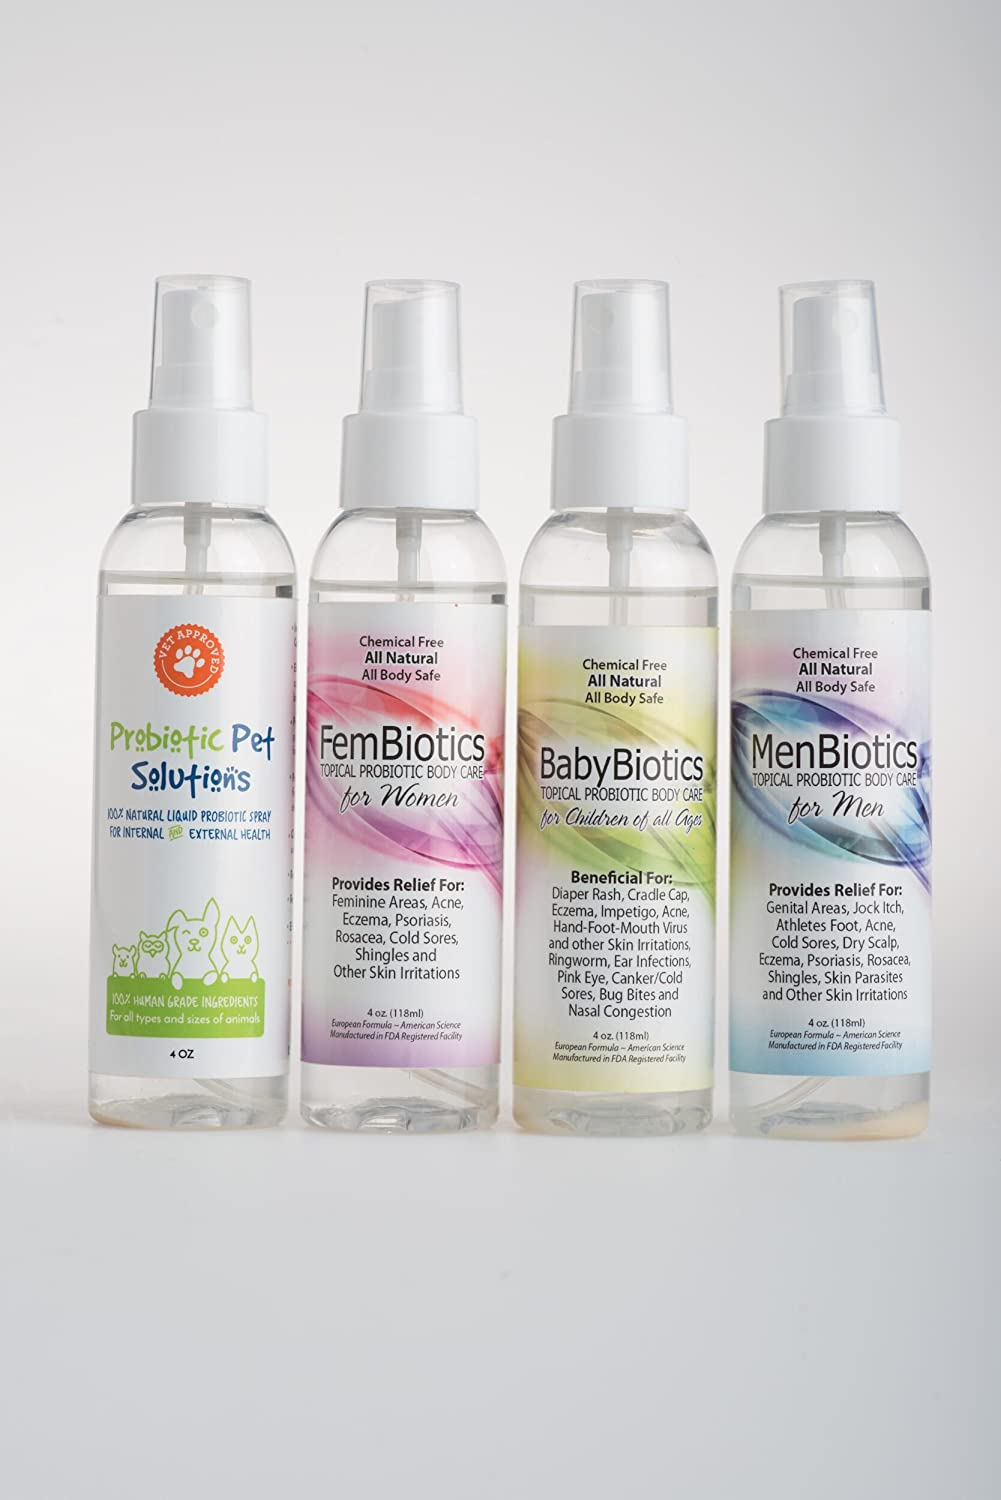 Smart-n-Healthy Probiotic Body Care Probiótico Pet Solutions - todo Natural Spray de probióticos para uso interno y externo para todos los animales: ...